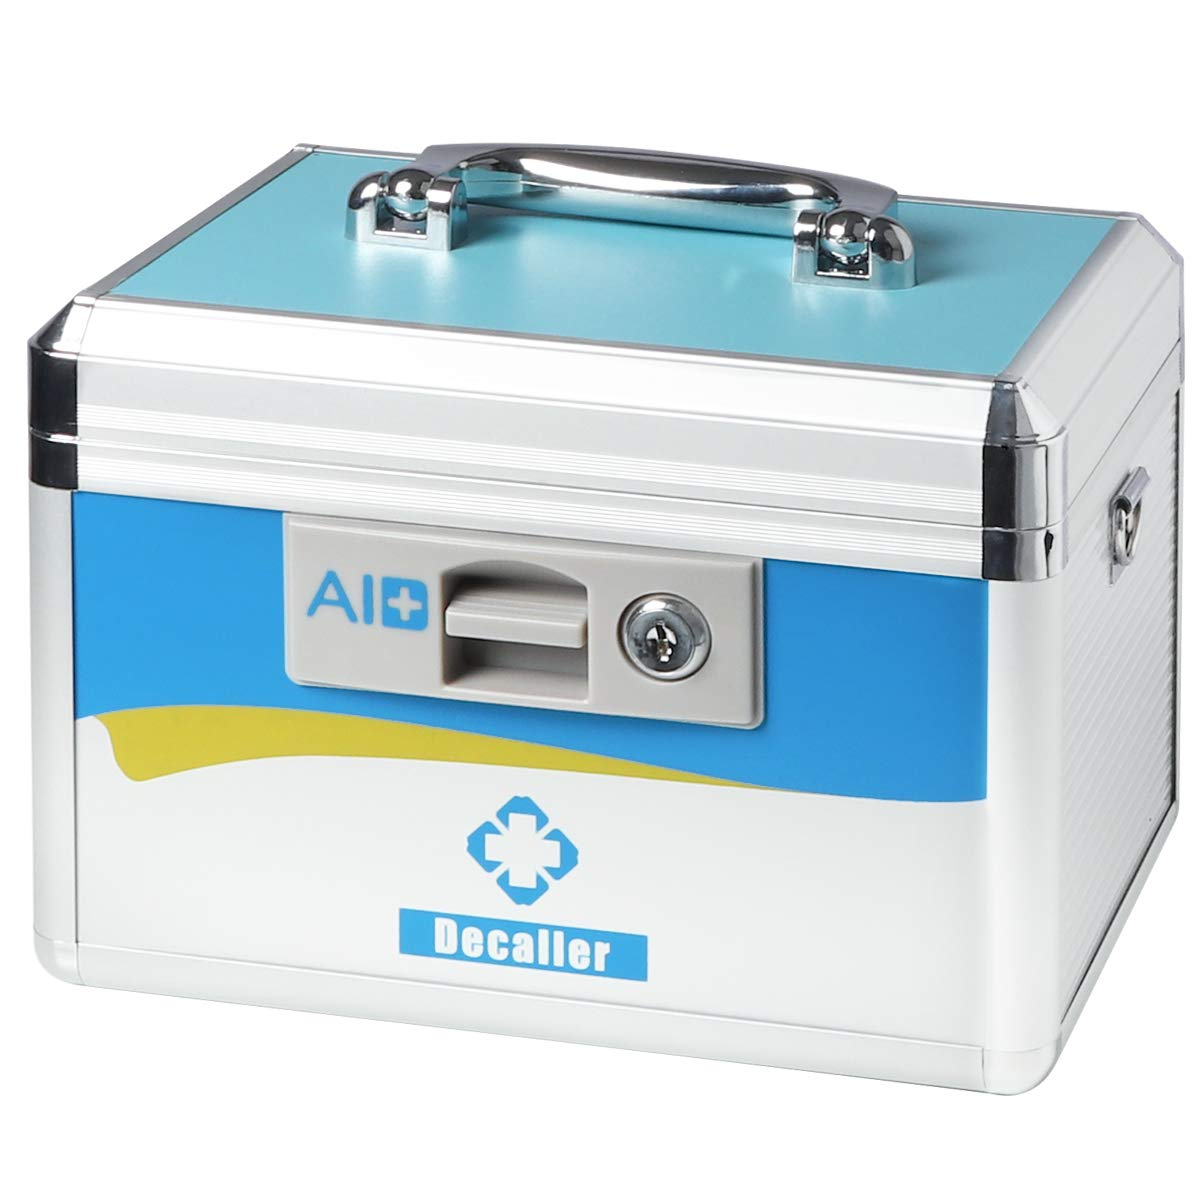 Decaller First Aid Box with Security Lock, Medical Box with Removable Tray for Drugs Storage, 10 1/2'' x 7 3/5'' x 7 3/5'', Small, Blue, YLX002S by Decaller